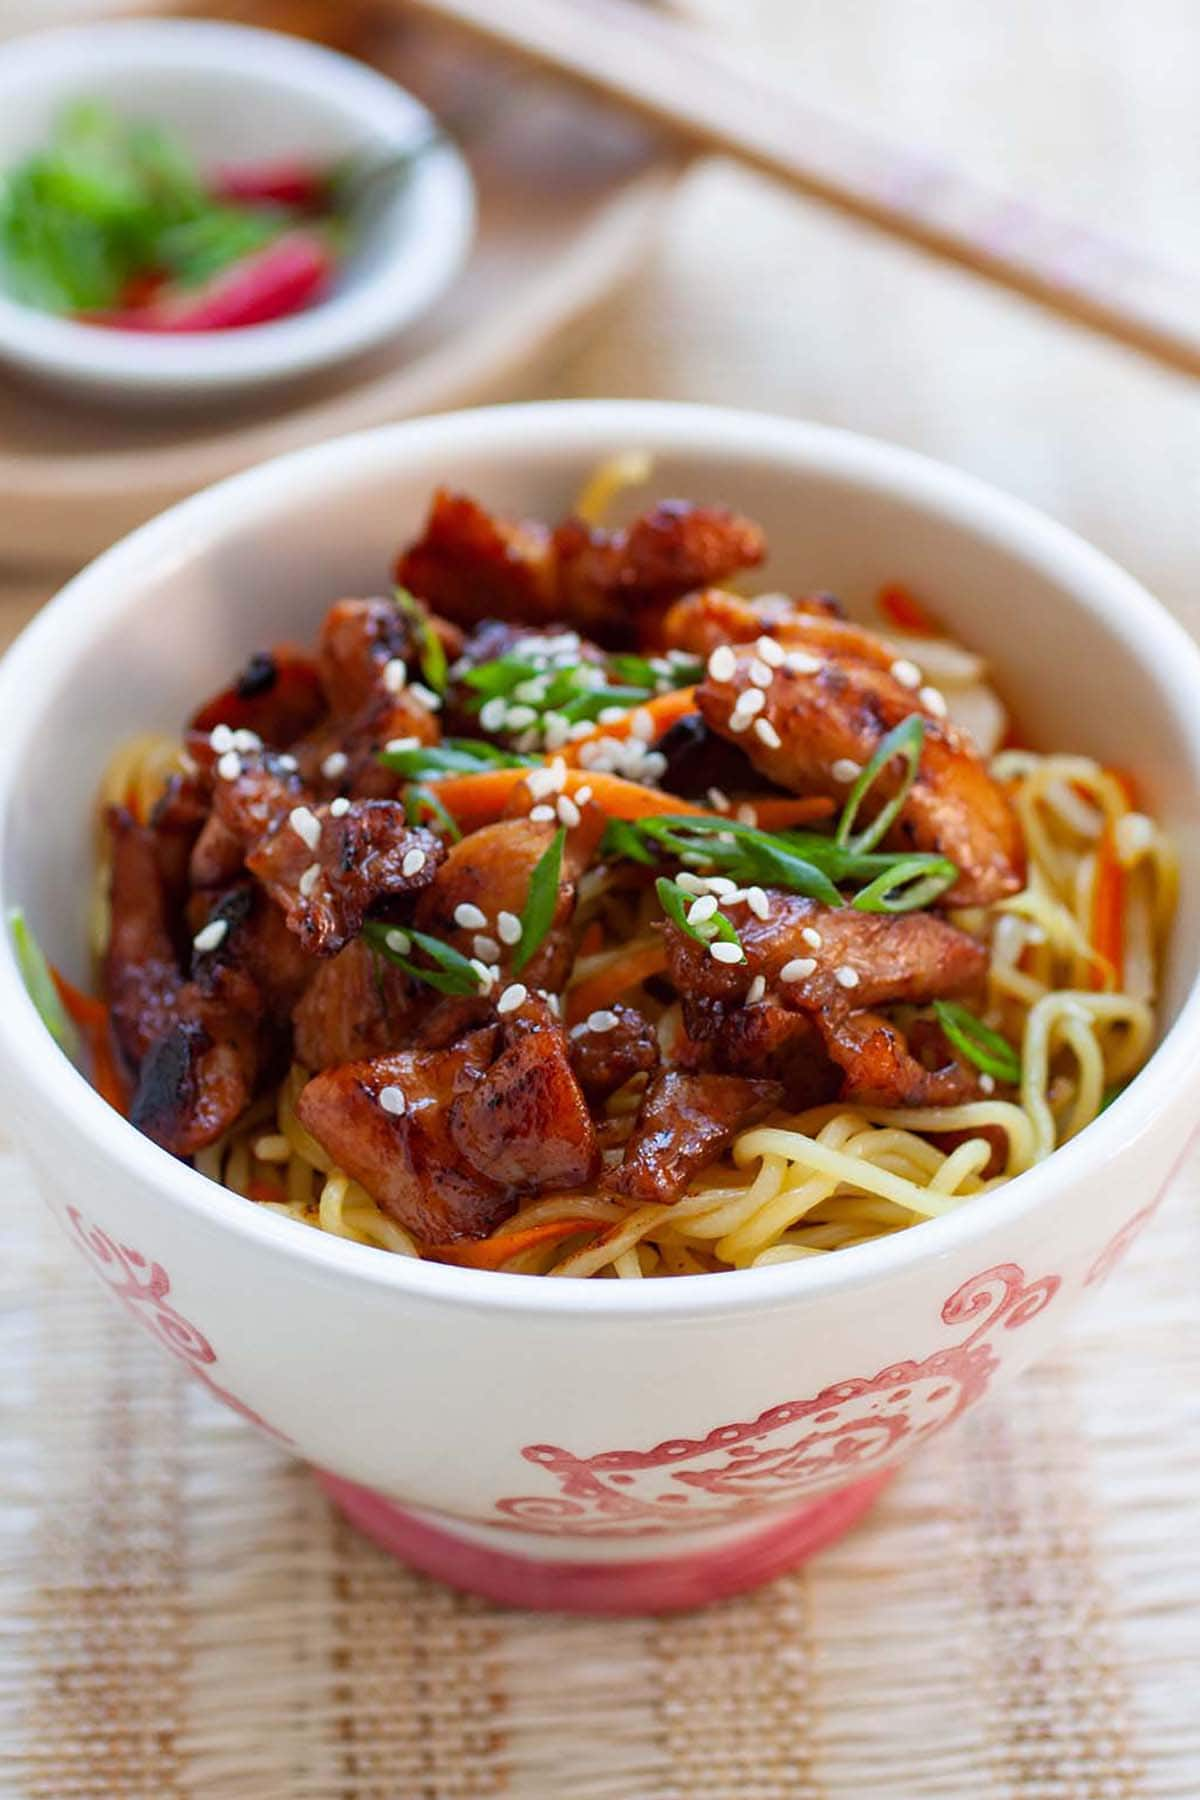 Chicken stir-fried noodles complete with carrots and green onions in a bowl.